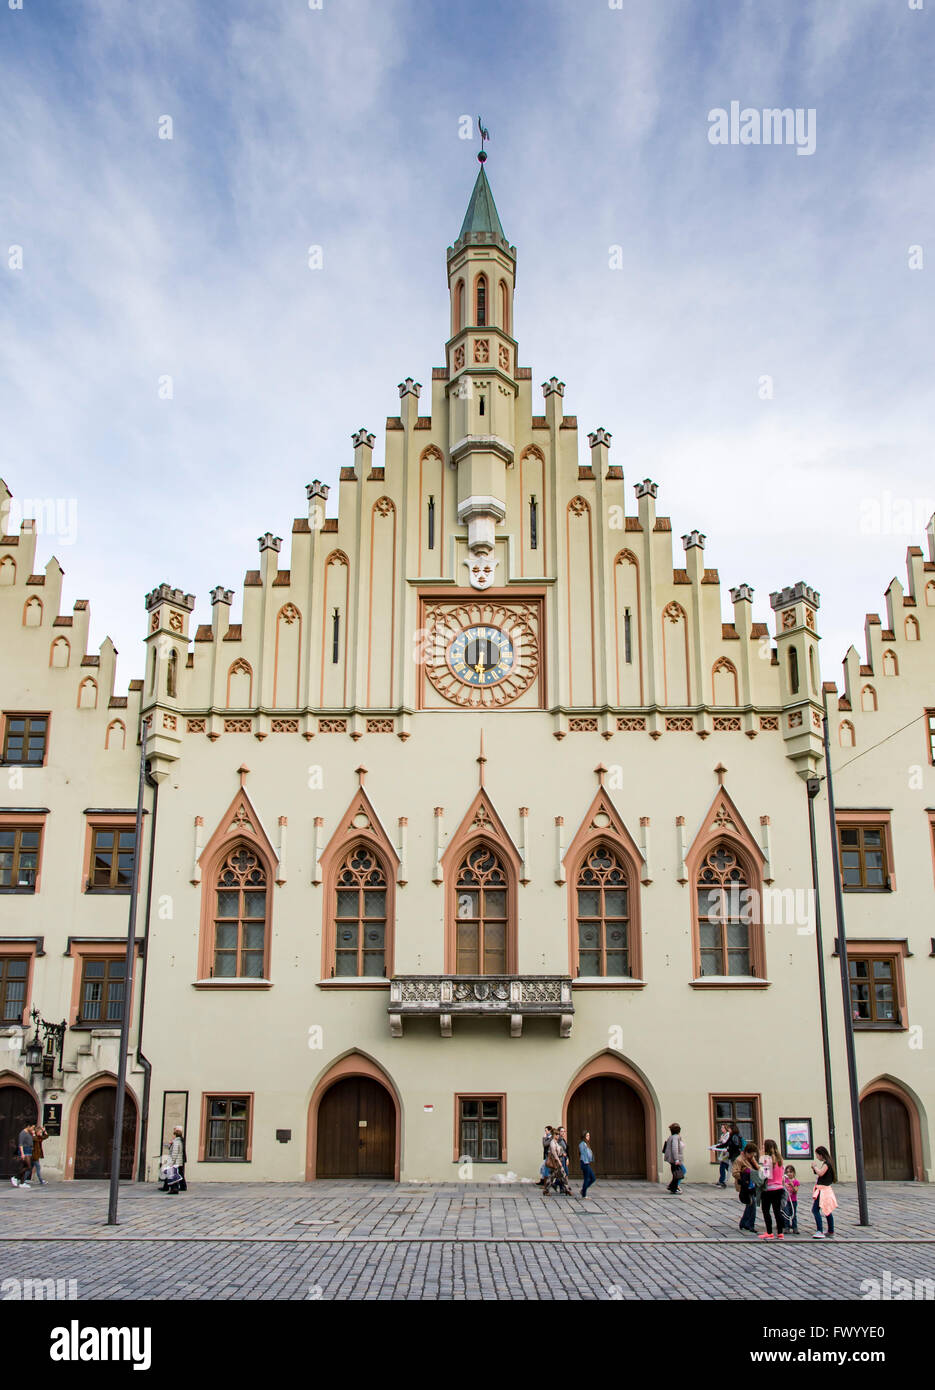 LANDSHUT, GERMANY - MARCH 31. Tourists at the historic town hall in Landshut, Germany on March 31, 2016. - Stock Image